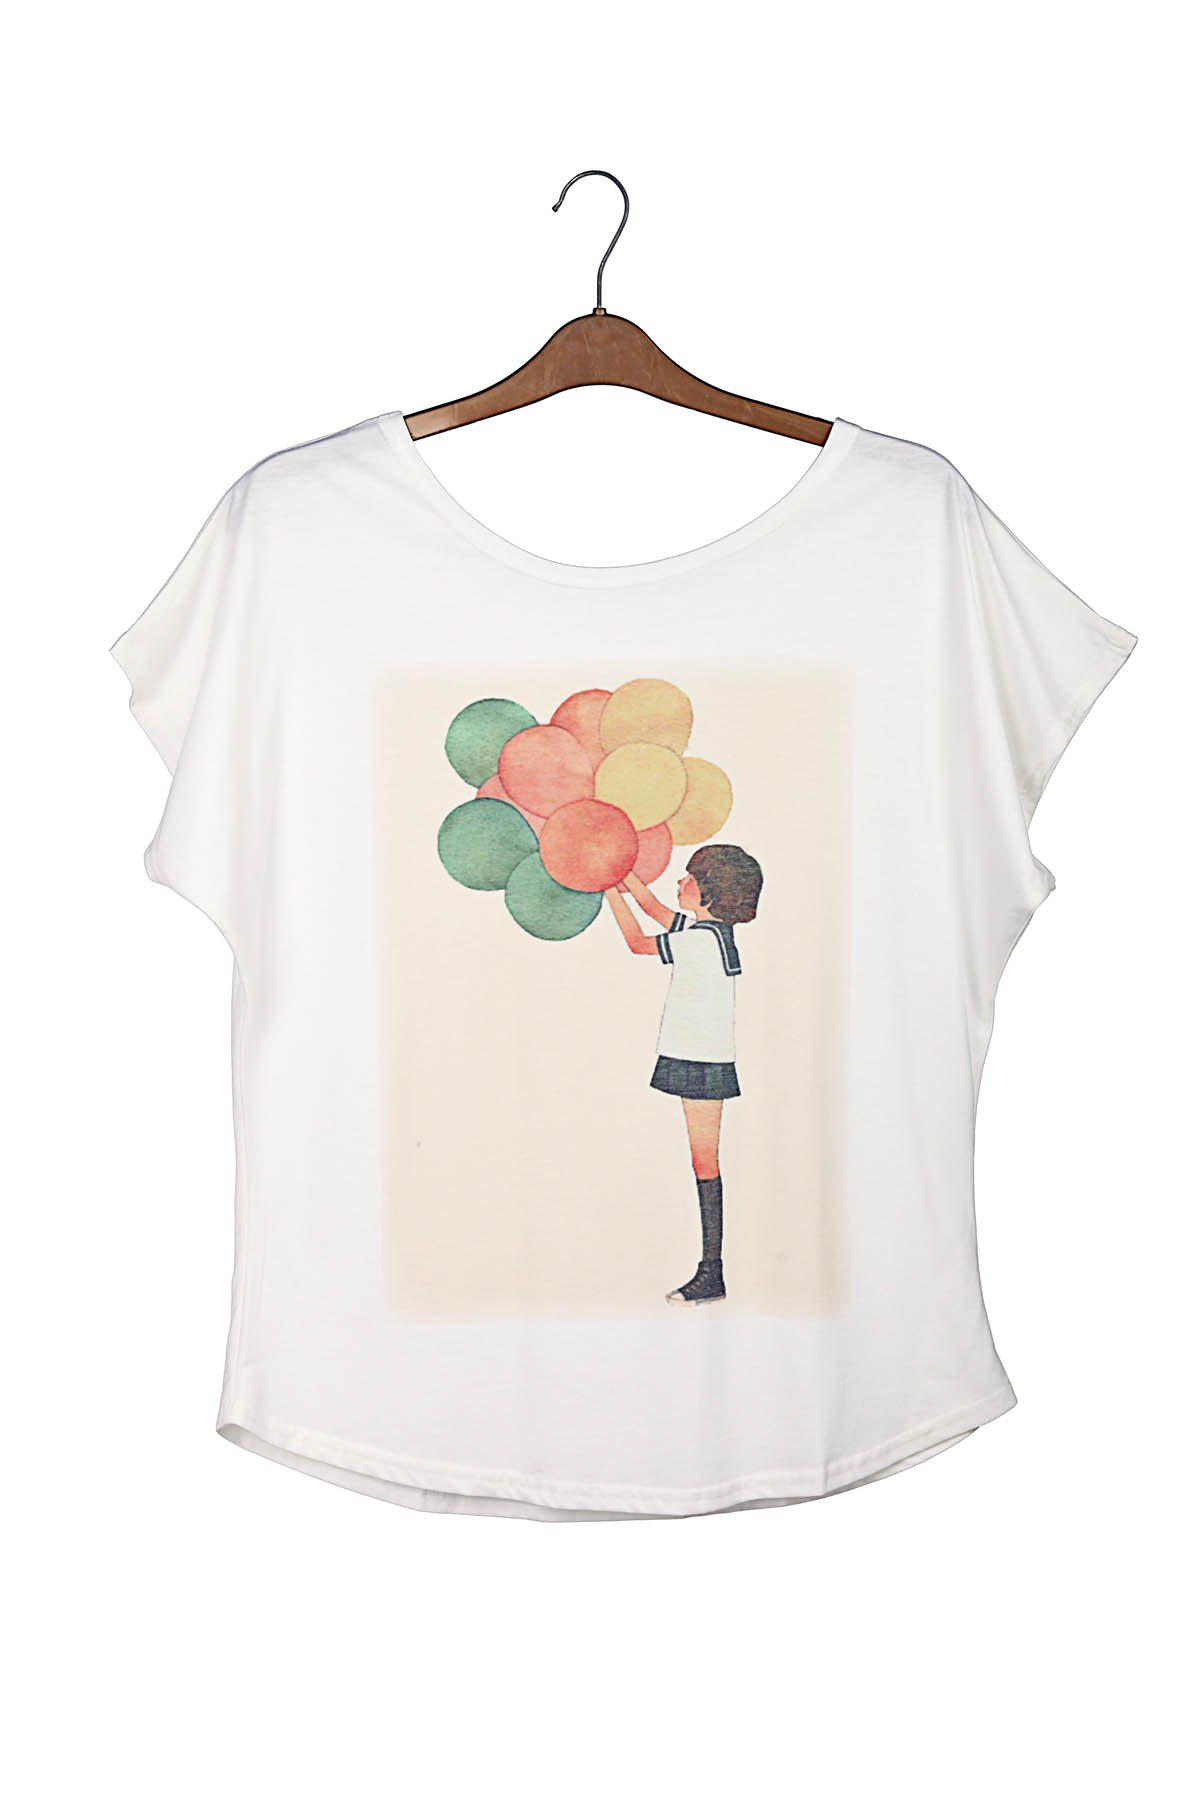 Balloon Print Laconic Scoop Neck Batwing Sleeve Women's T-Shirt